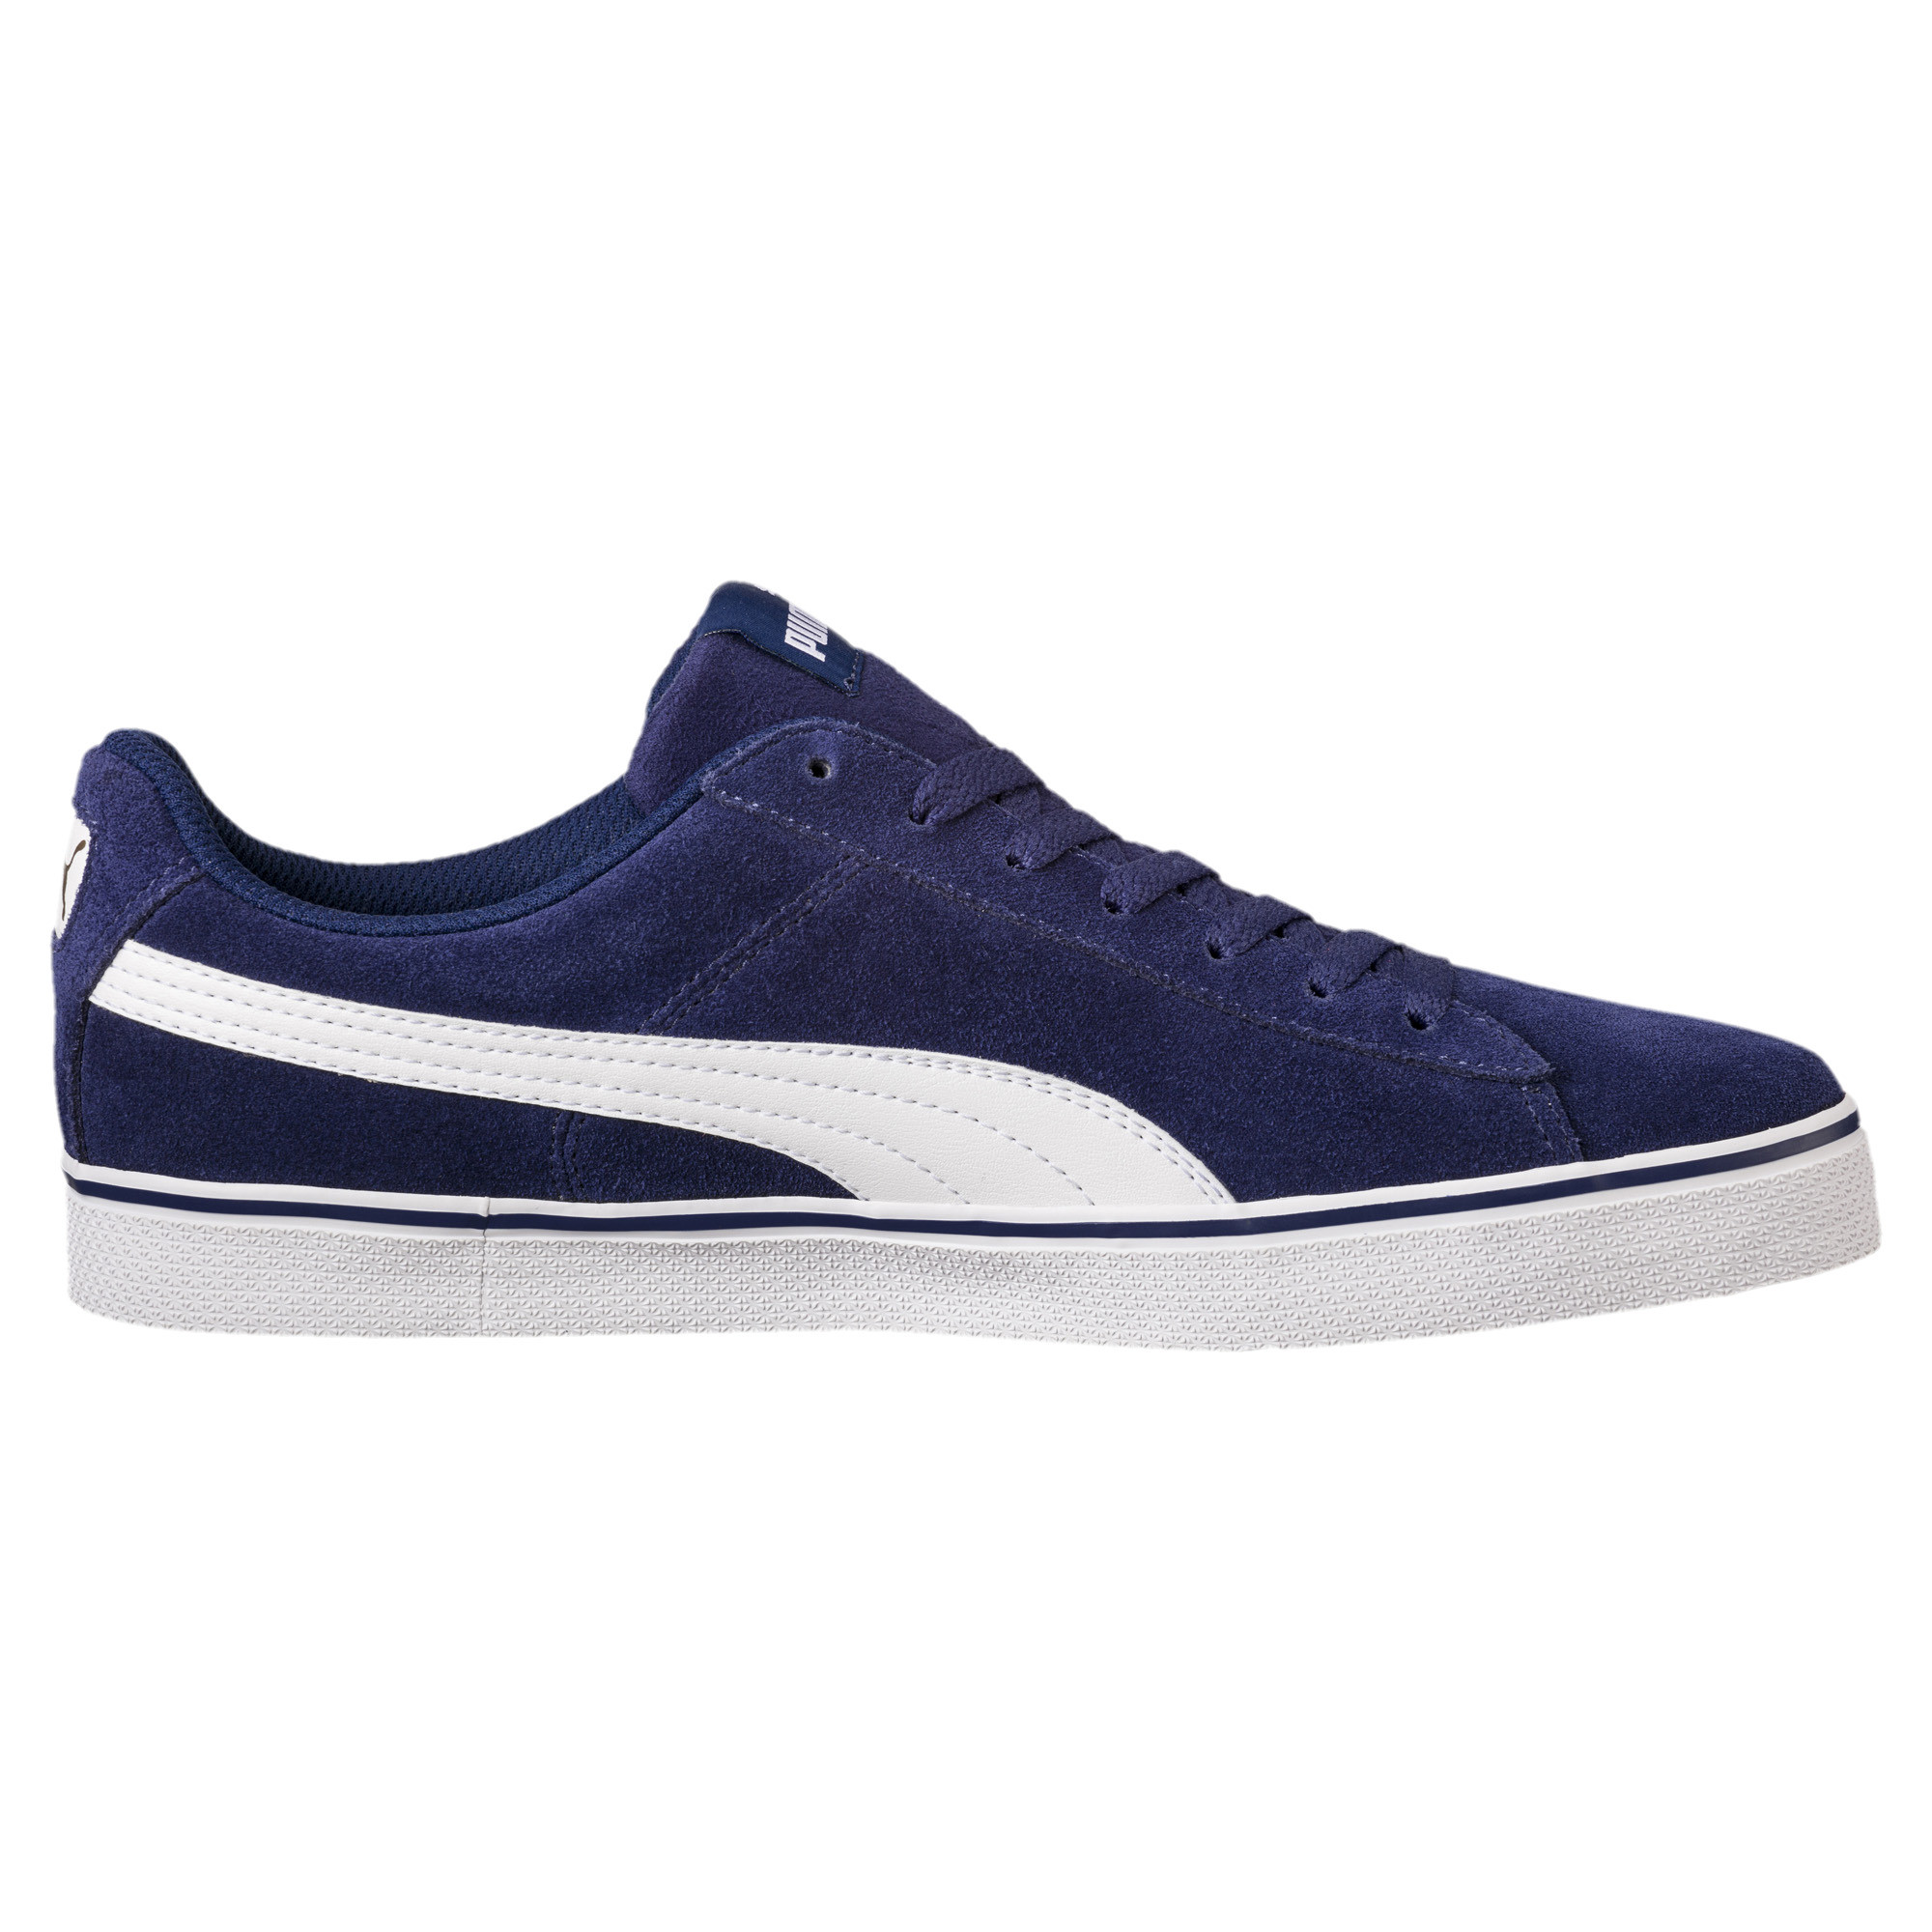 PUMA-Puma-1948-Vulc-Men-s-Sneakers-Men-Shoe-Basics thumbnail 10